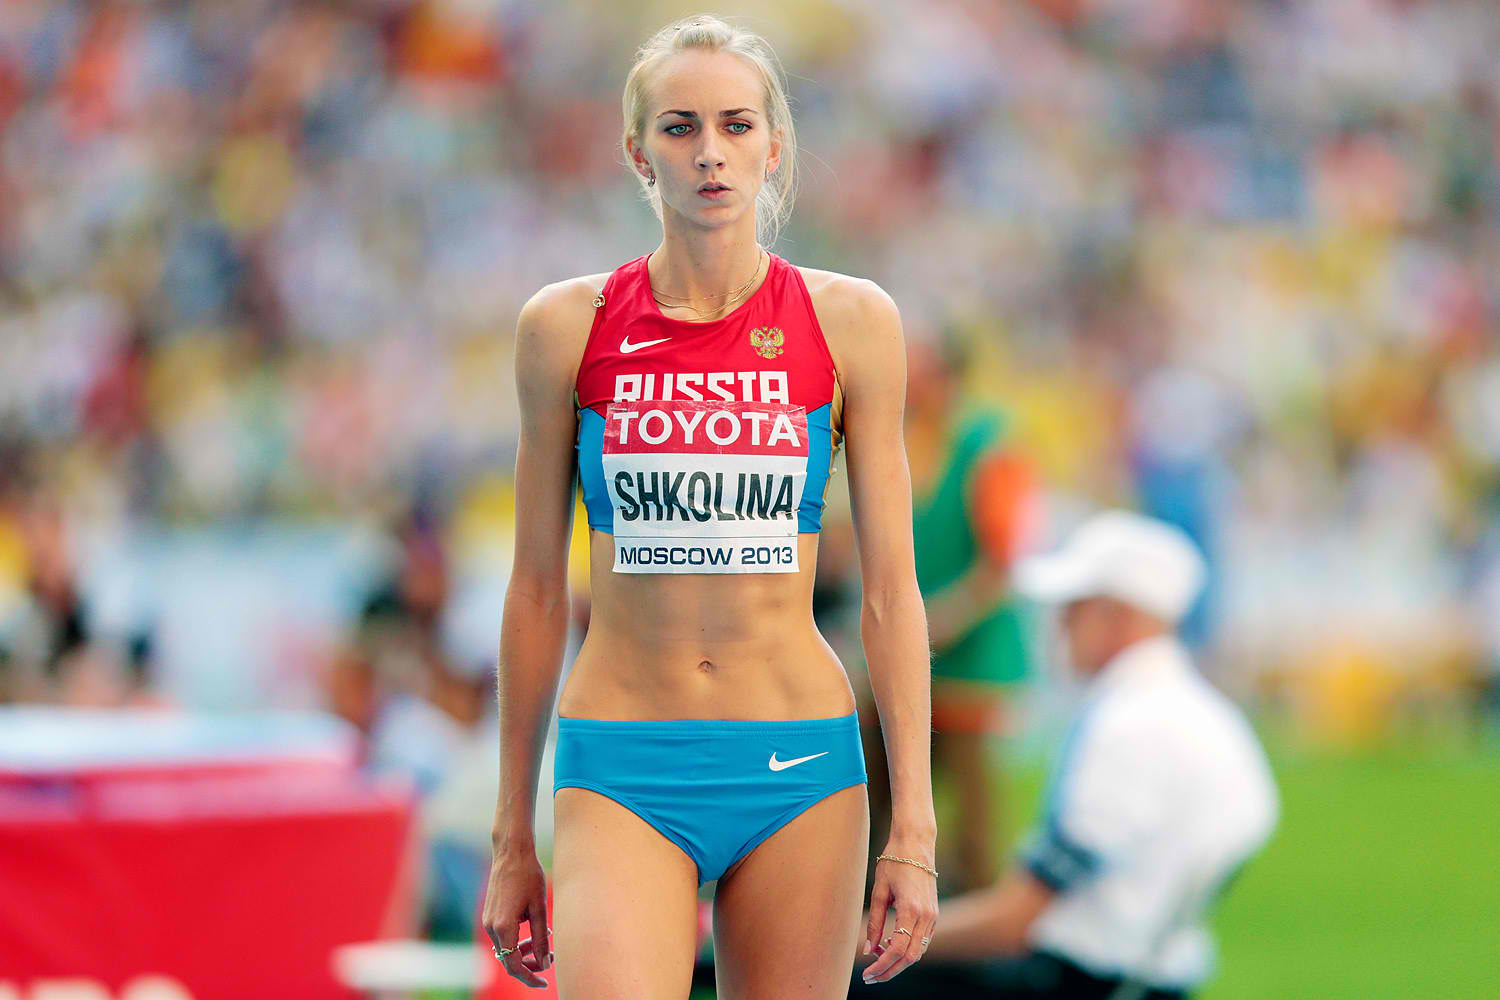 the issue of eating disorder at athletes When an athlete goes to unhealthy extremes to achieve a particular and unnatural body shape and weight, they risk developing both physical and psychological health issues, including eating disorders.